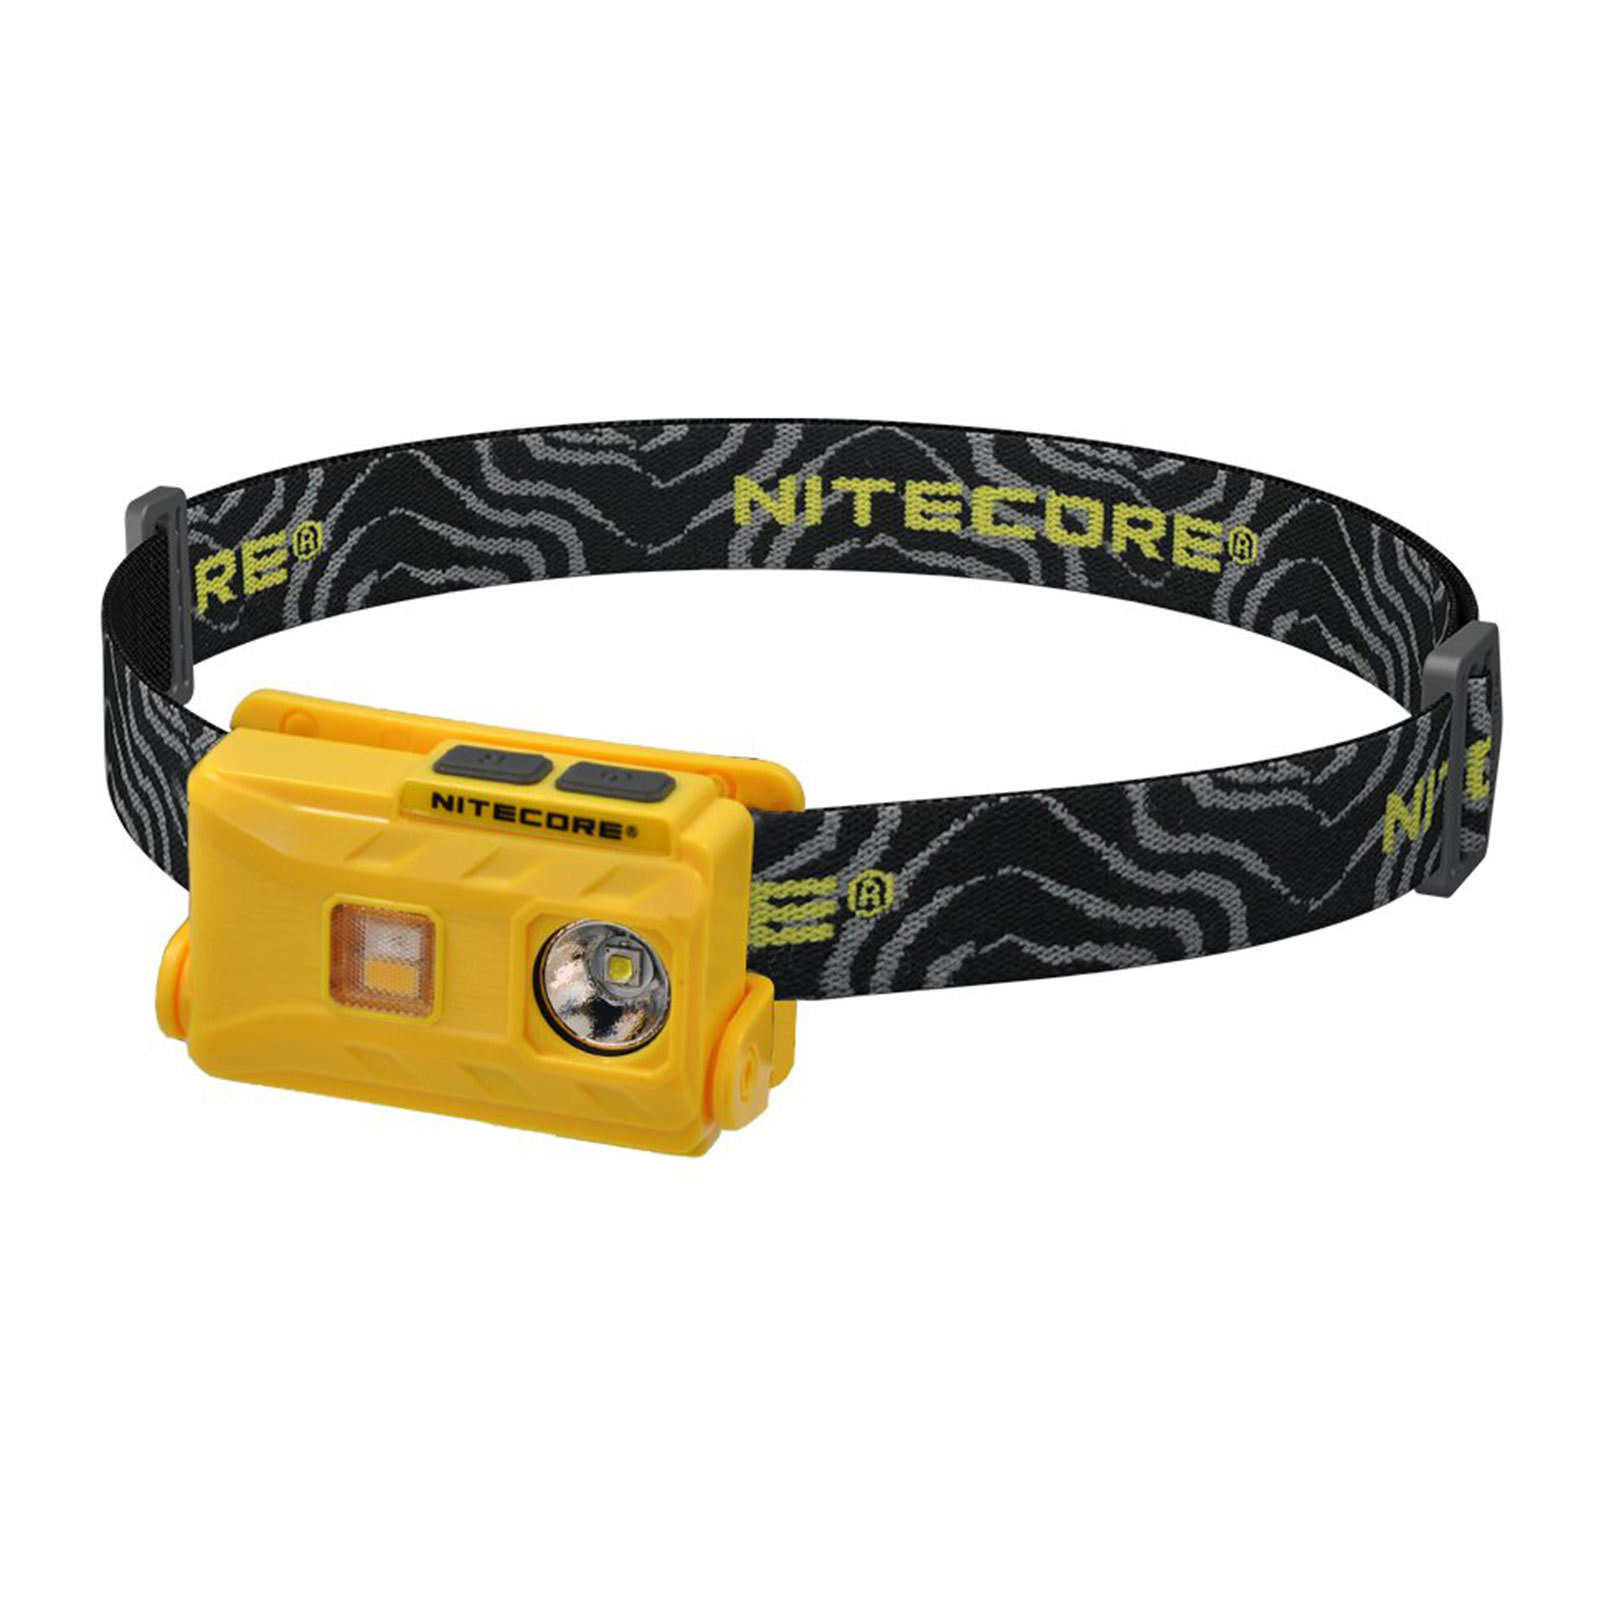 Nitecore NU25 USB Rechargeable Headlamp